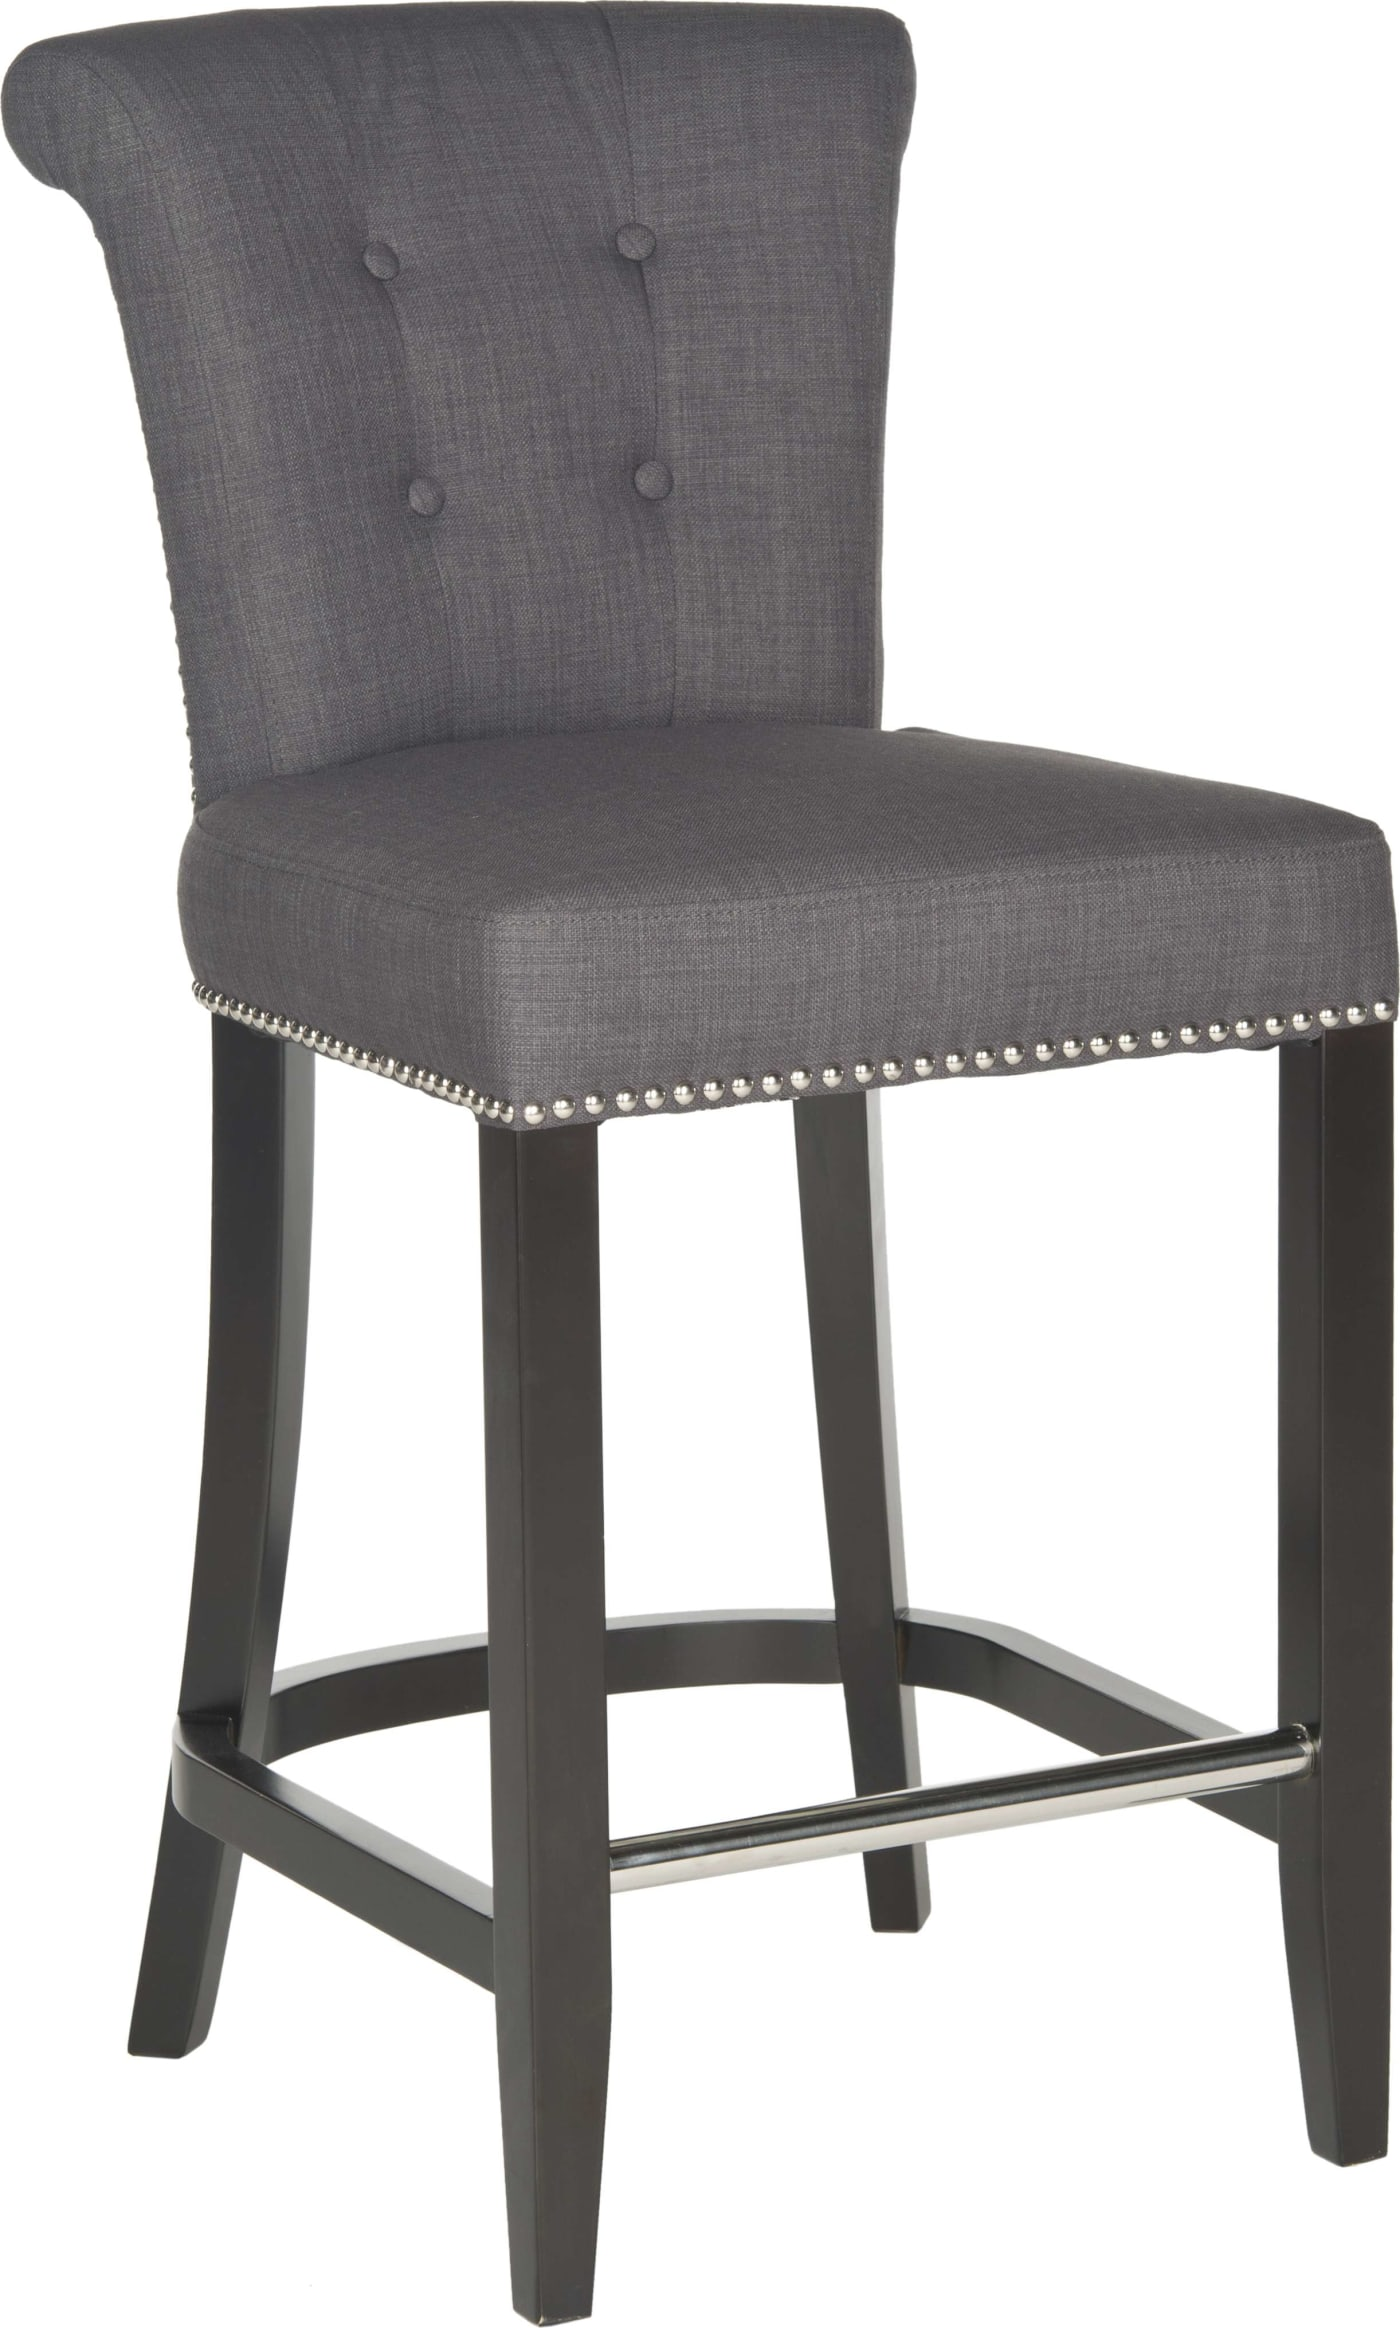 Safavieh Addo Ring Charcoal Counter Stool Amp Reviews